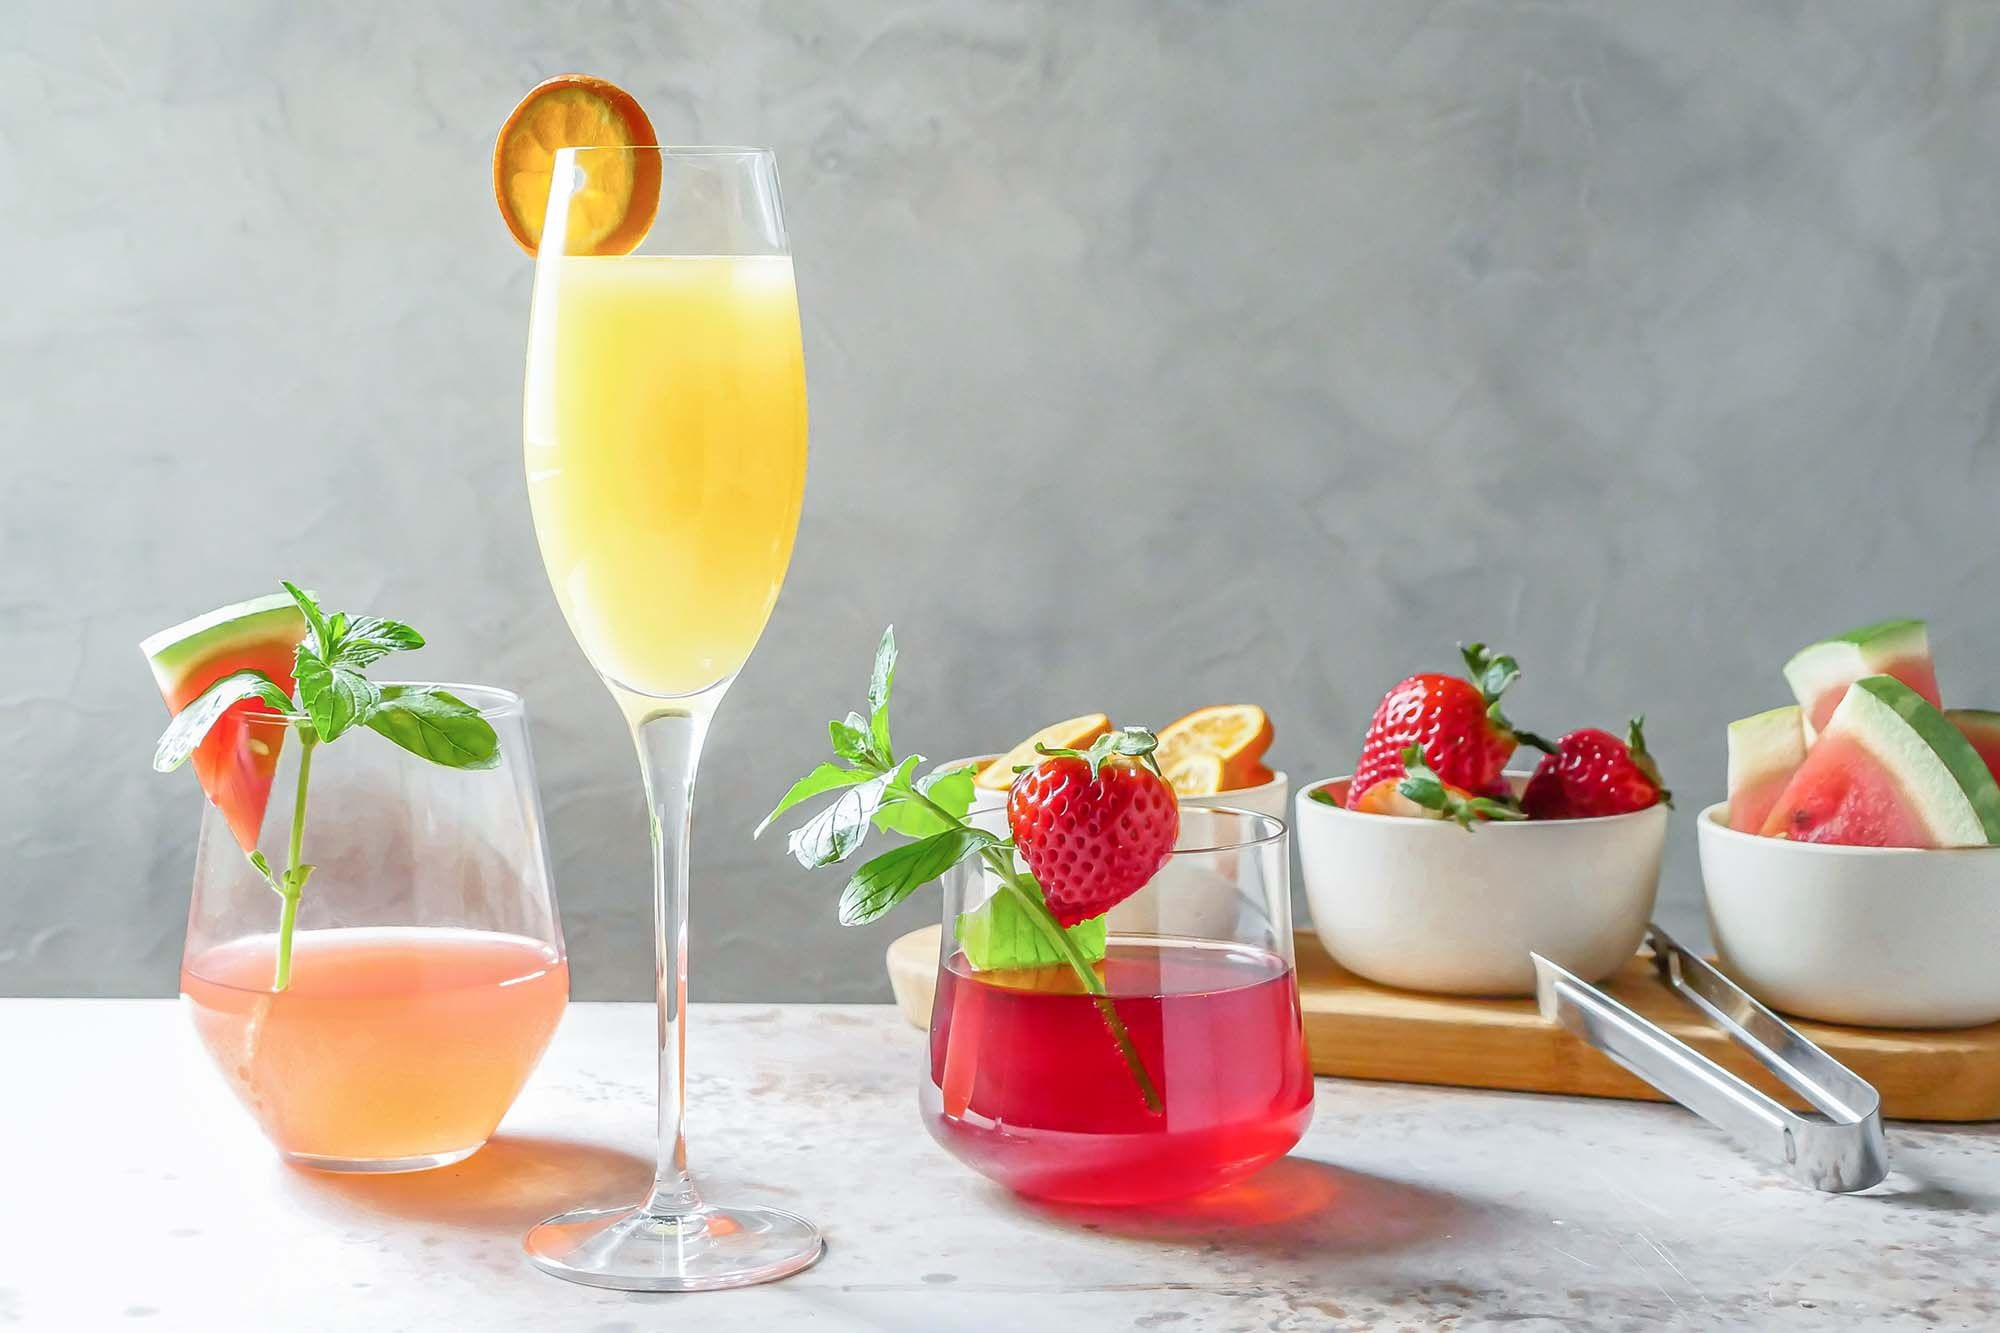 6 Situations When Drinking a Mimosa Is a Perfect Idea